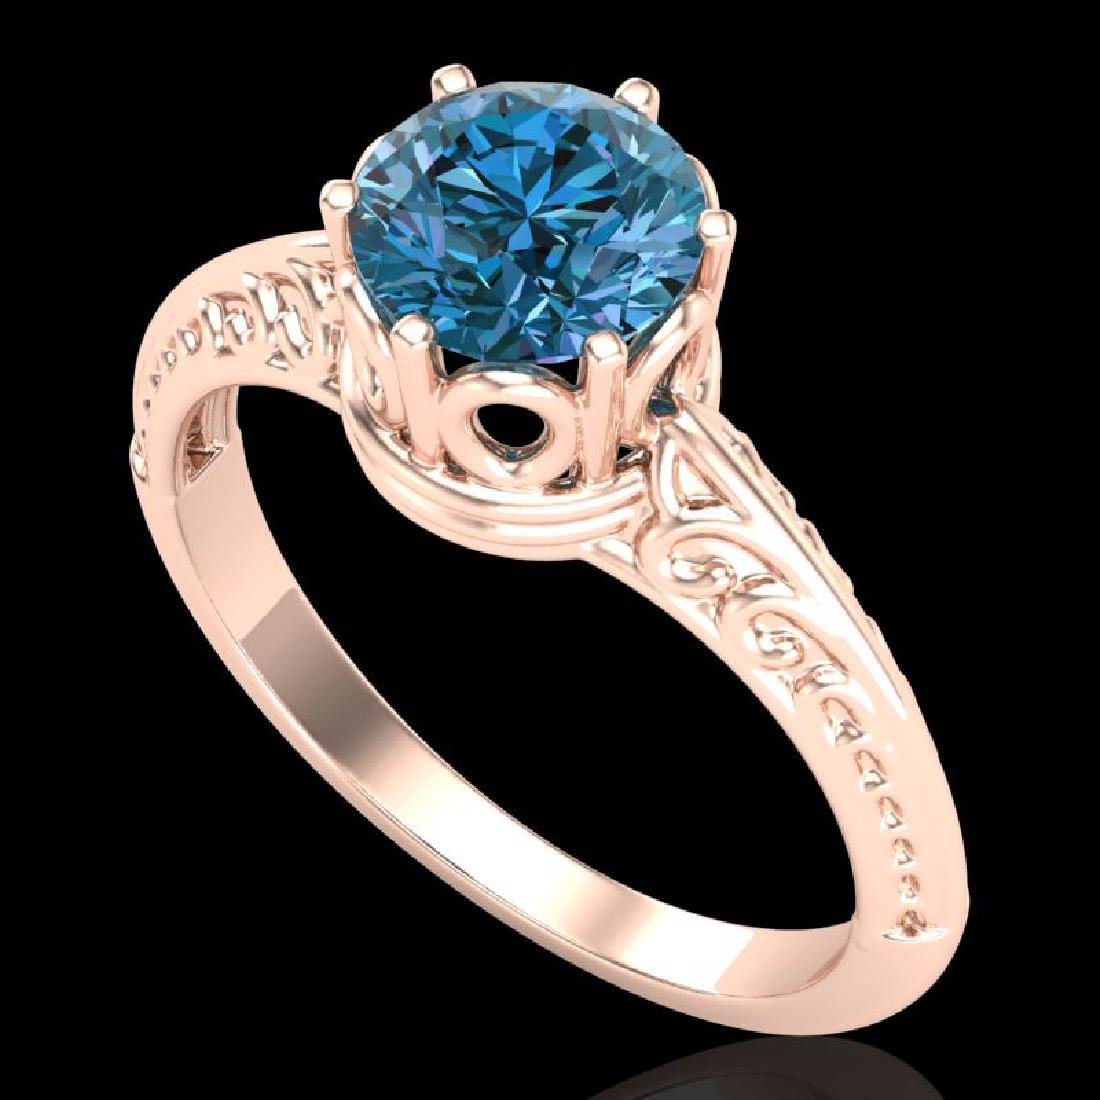 1 CTW Intense Blue Diamond Solitaire Engagement Art